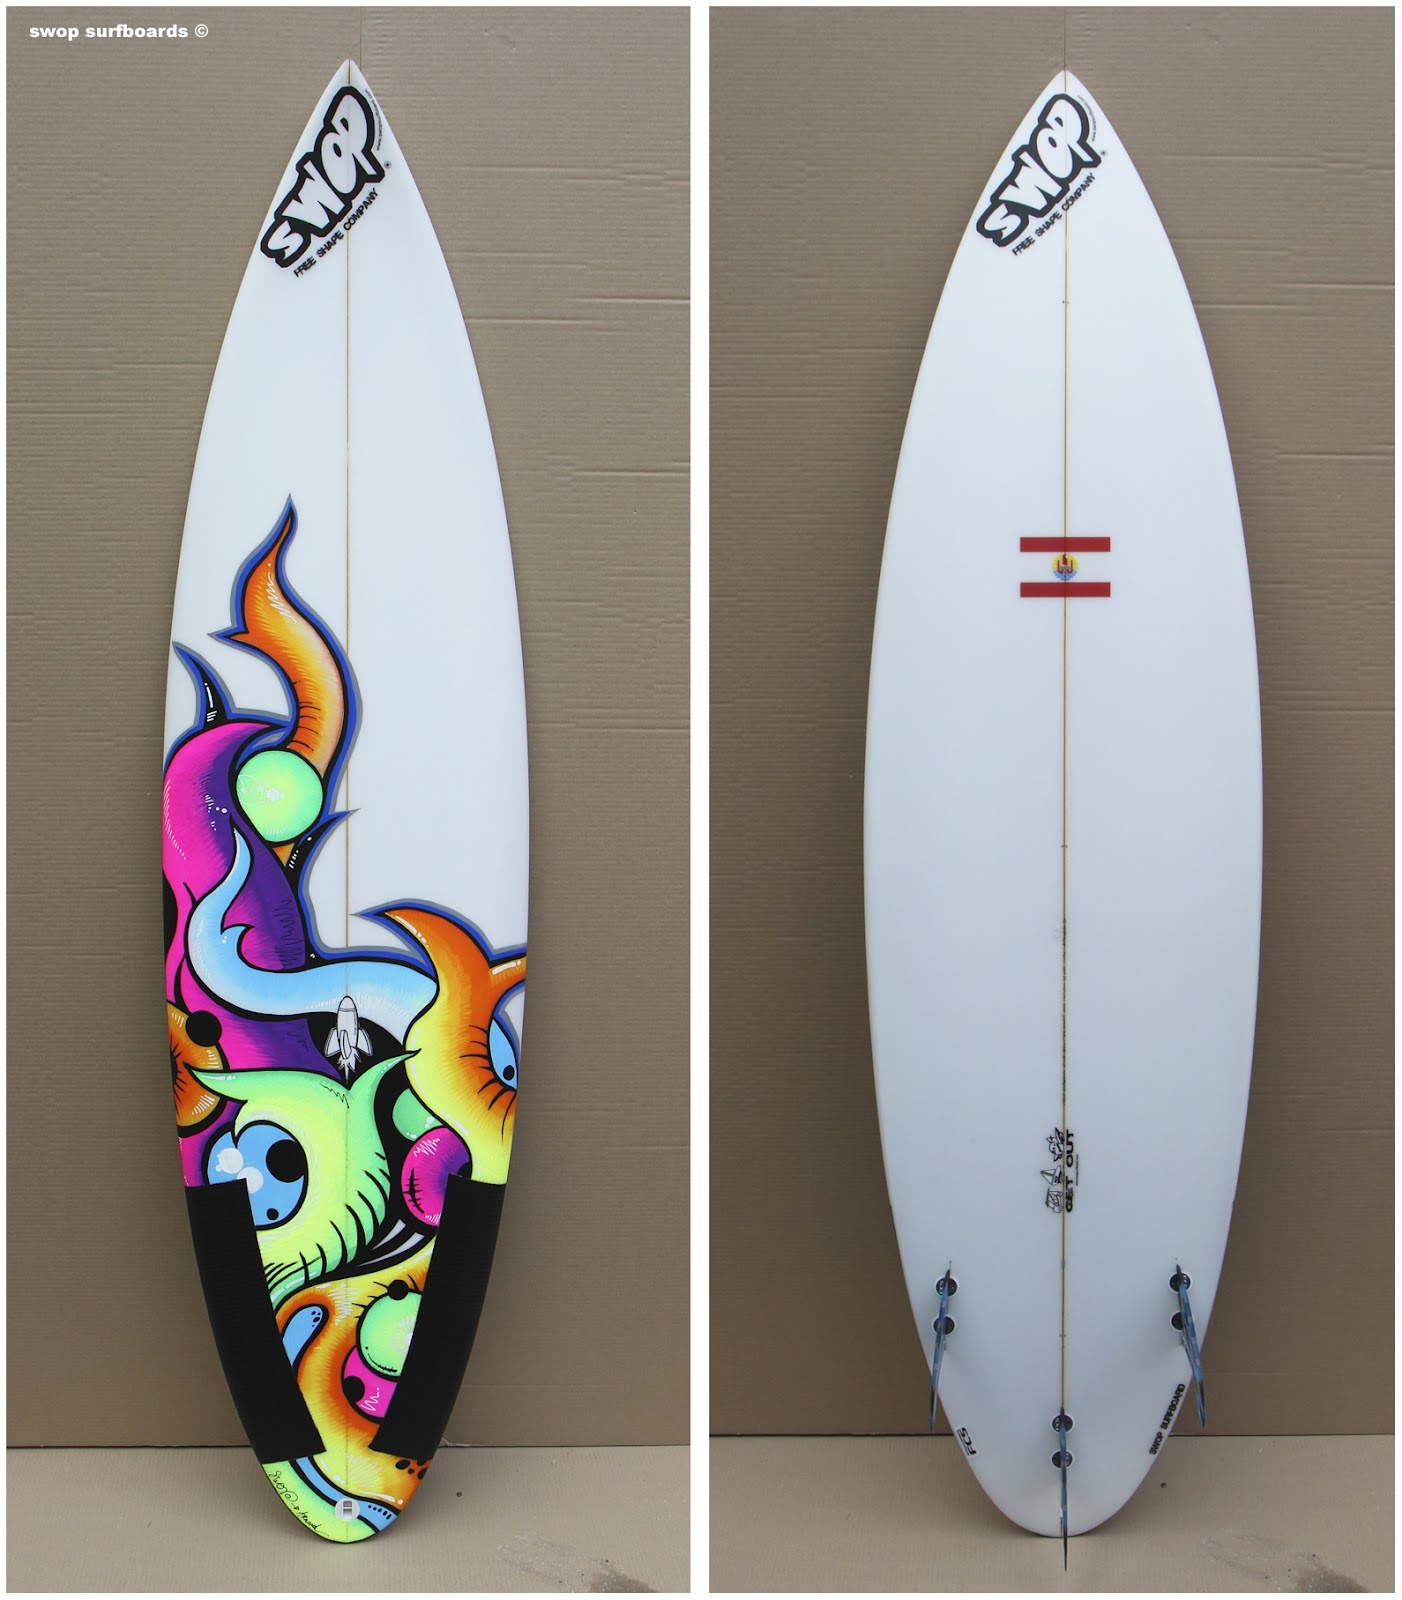 Swop Surfboards Crazy Jungle